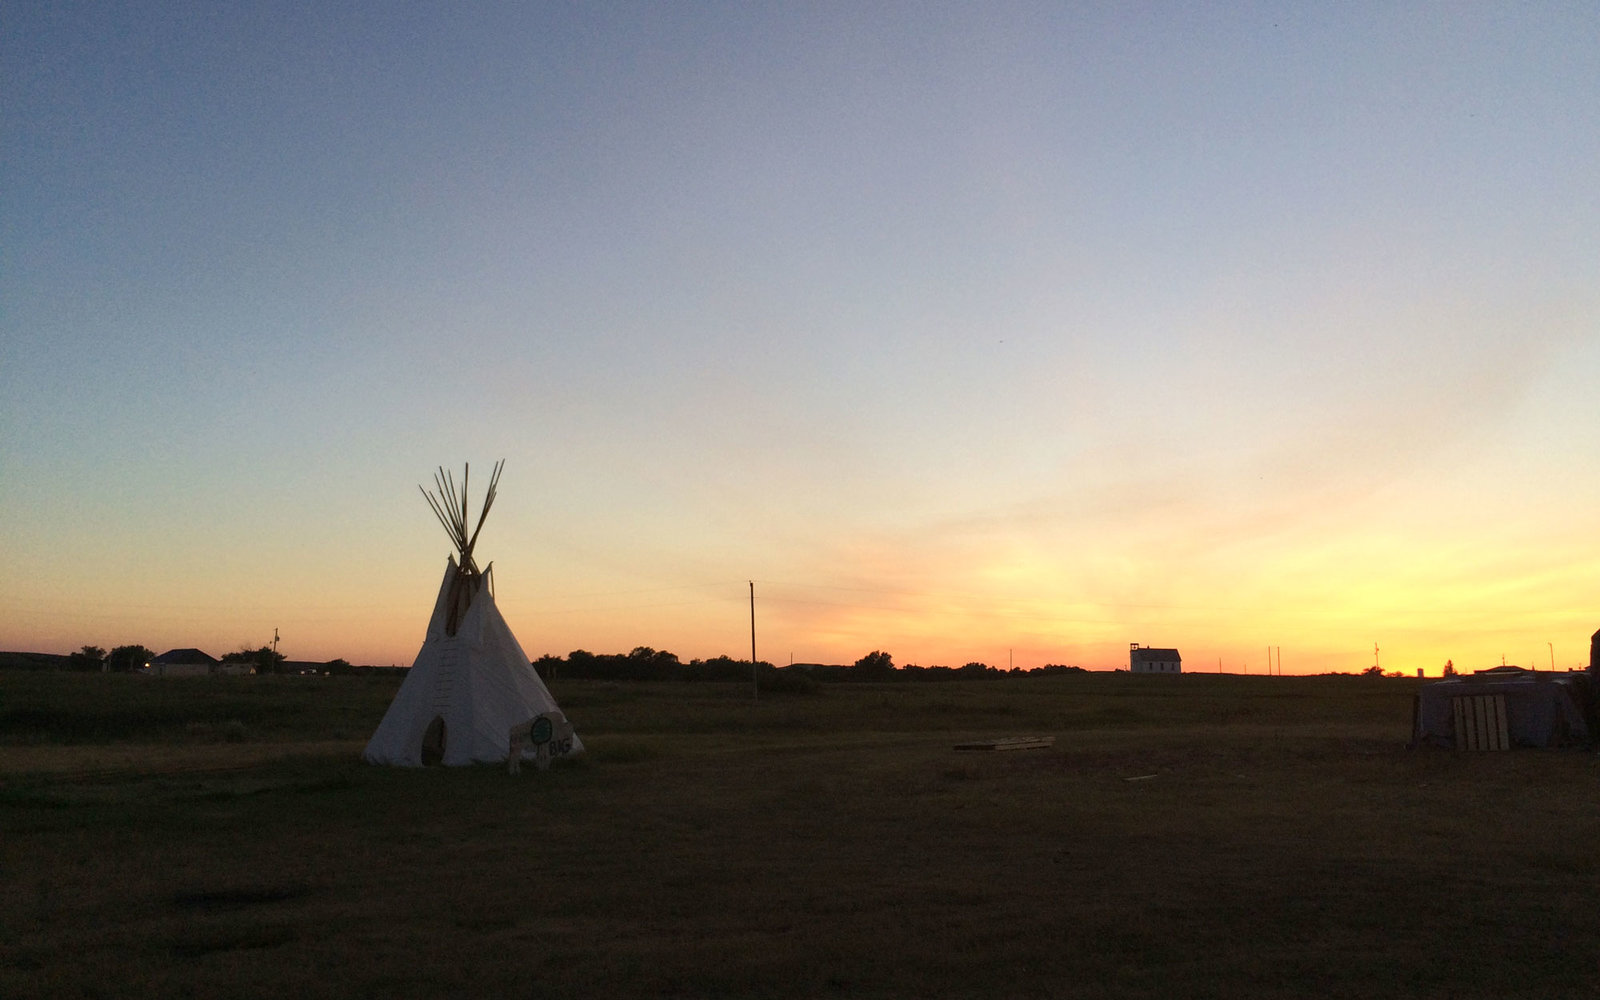 Living on the Cheyenne River Sioux Tribe Reservation